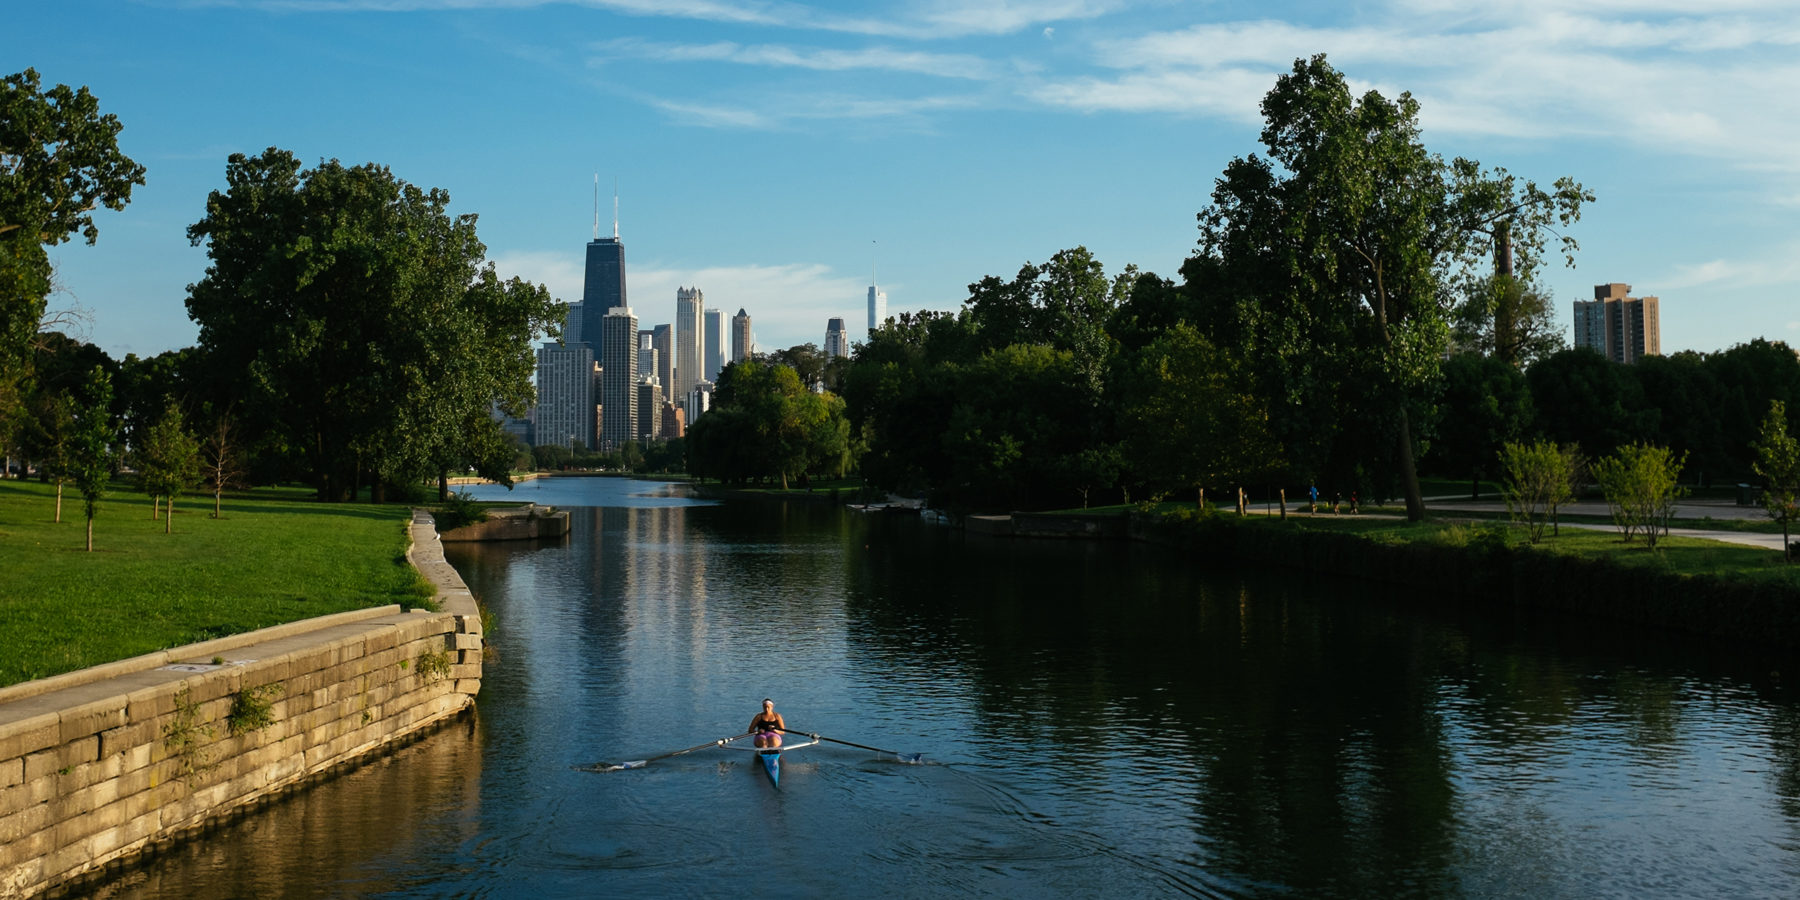 Rowing the Chicago River